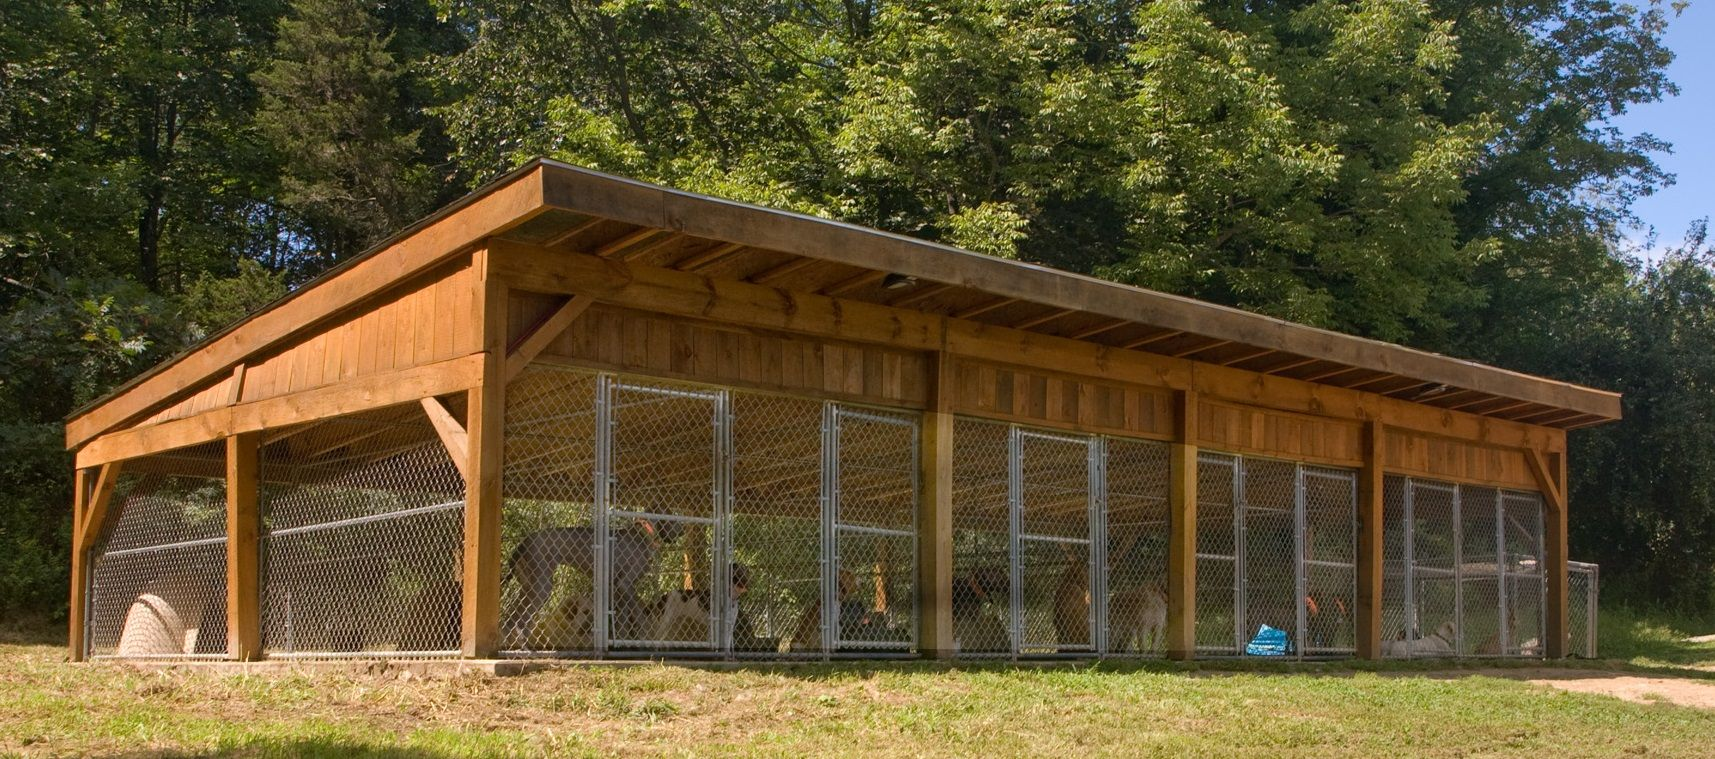 hunting dog kennel designs bing images - Dog Kennel Design Ideas